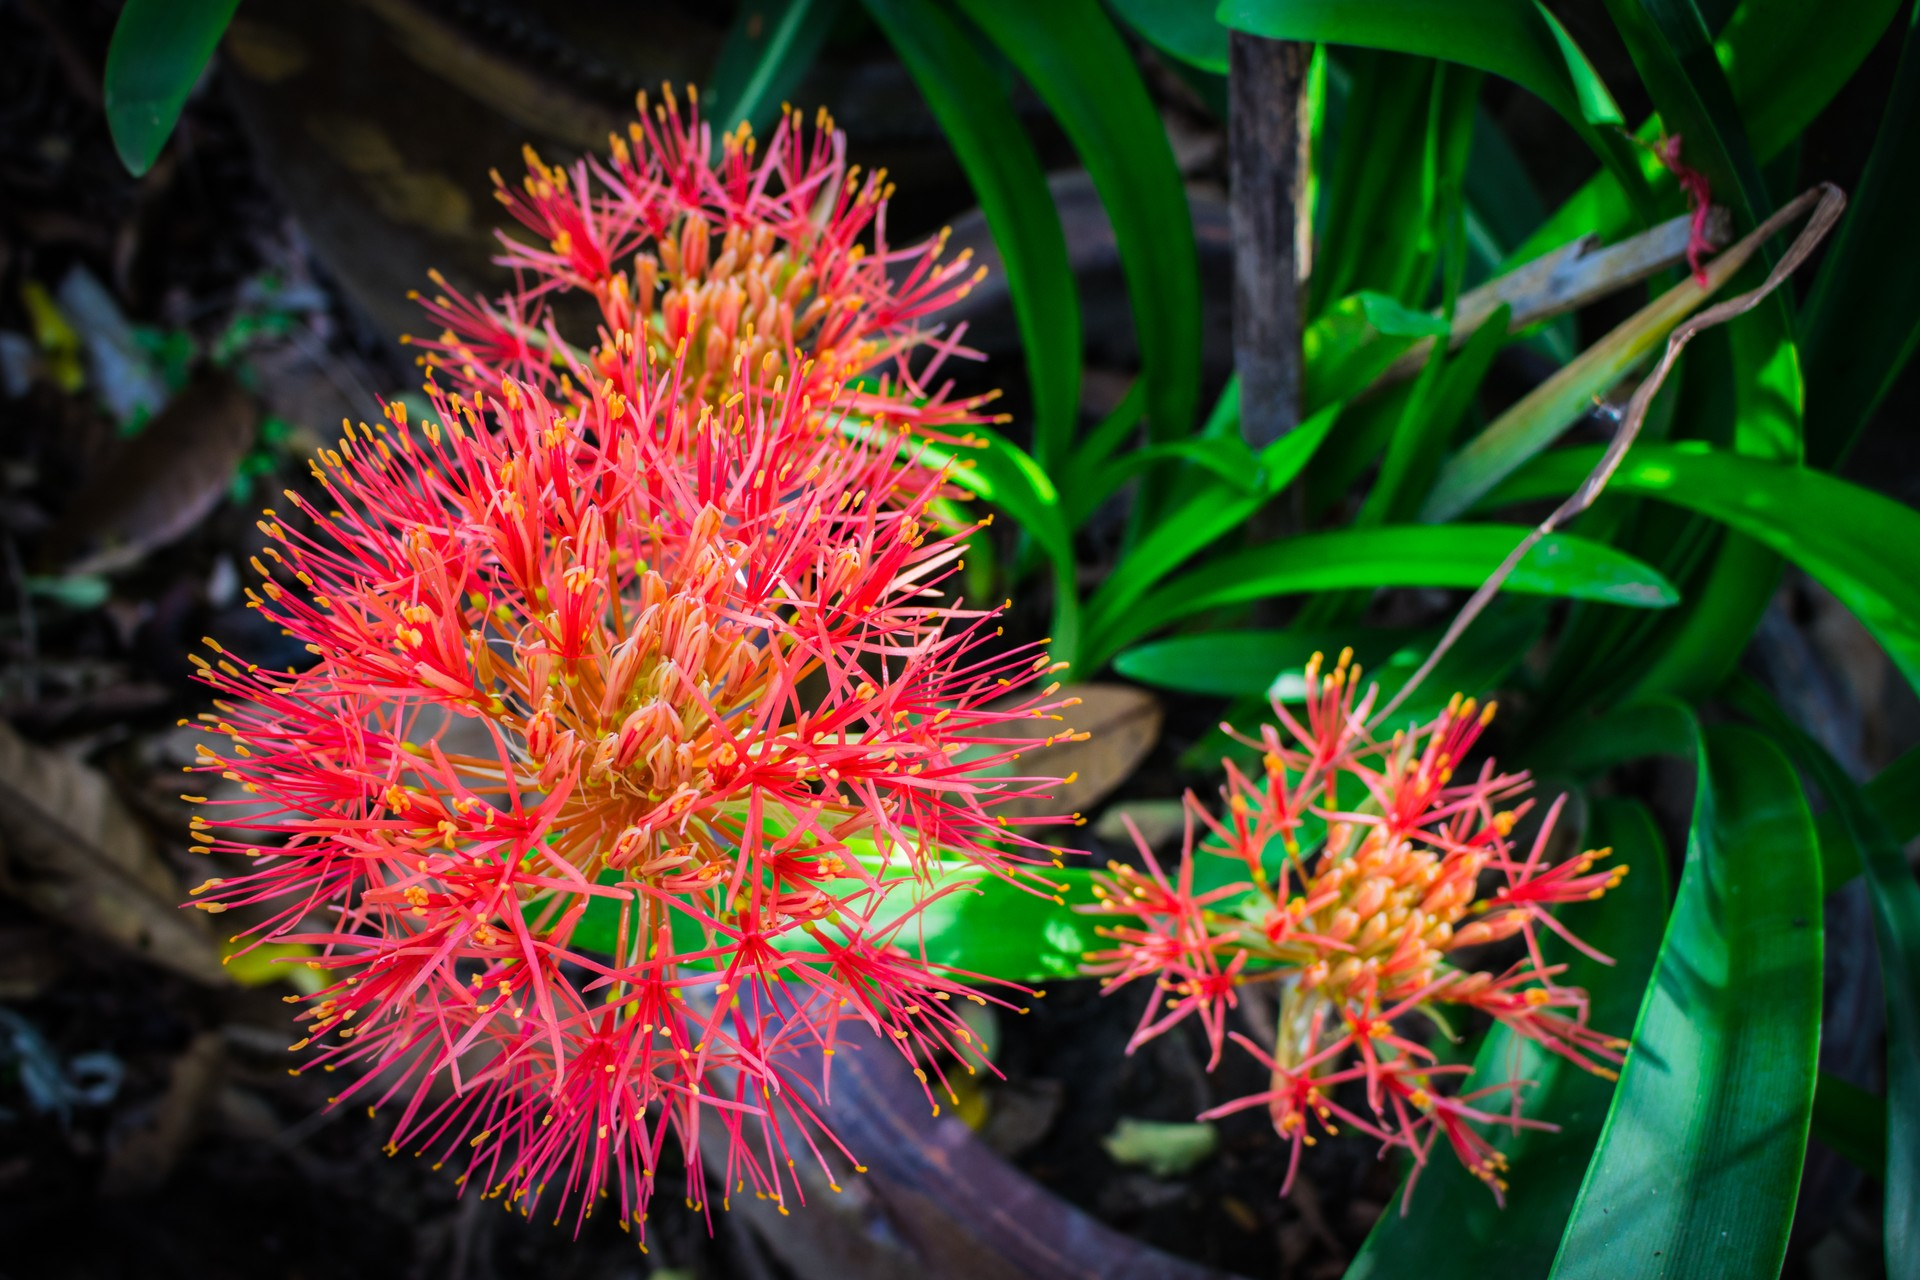 Blood lily in Brazil